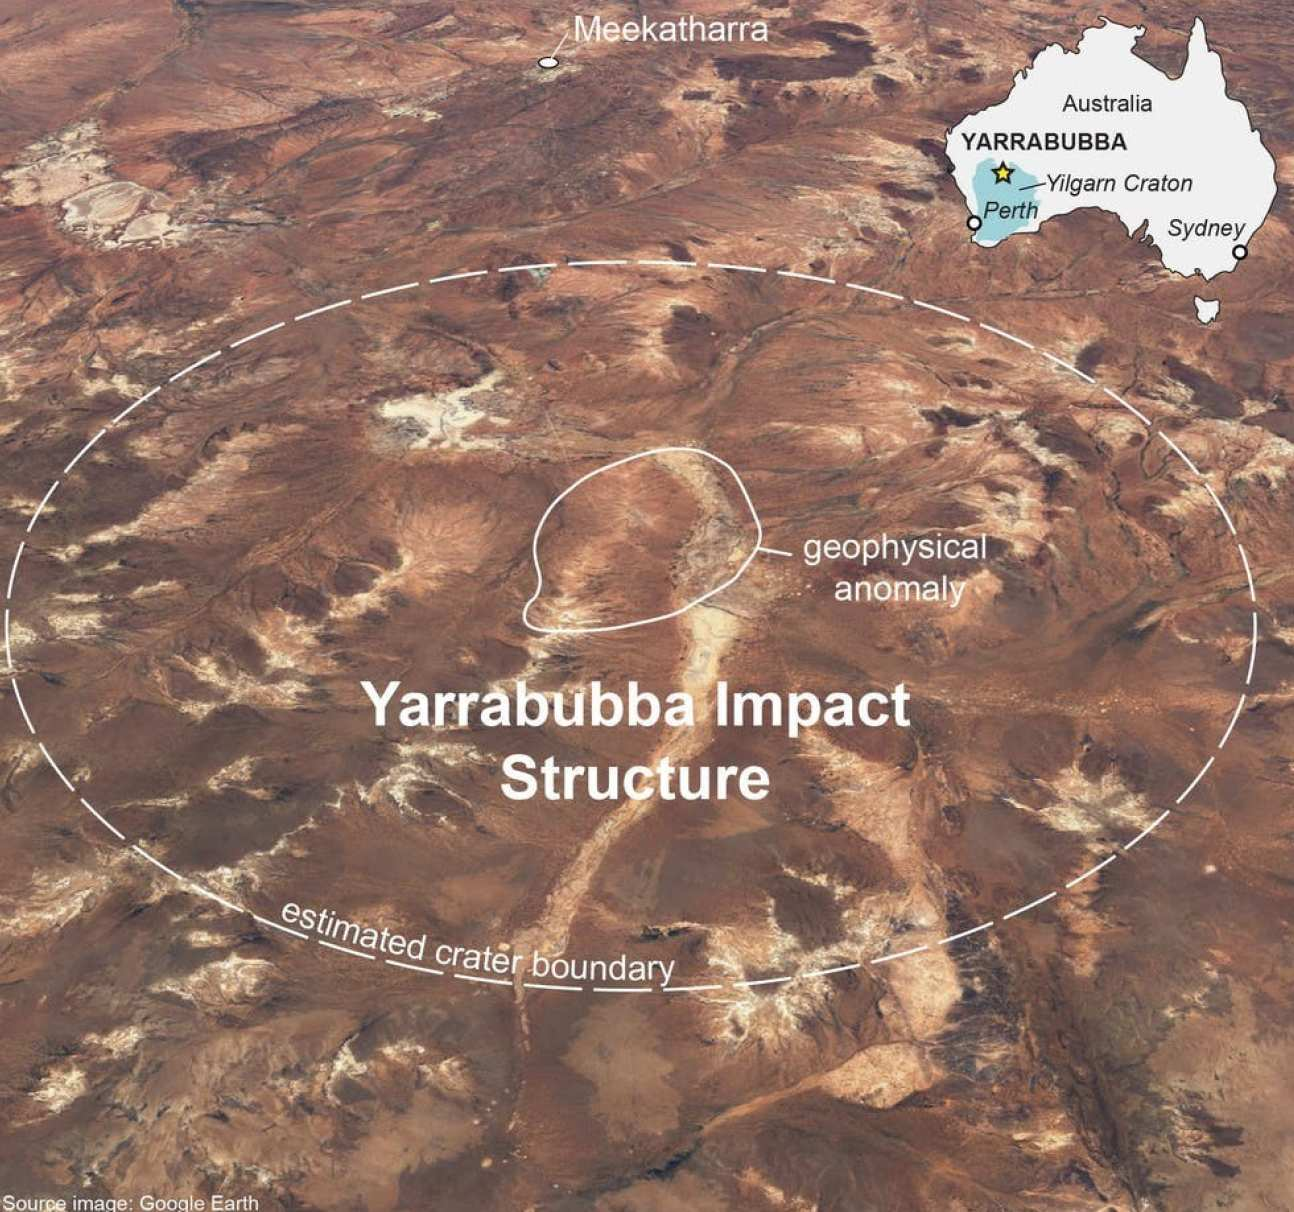 Photo of the Yarrabubba impact structure from above, and its place in Australia